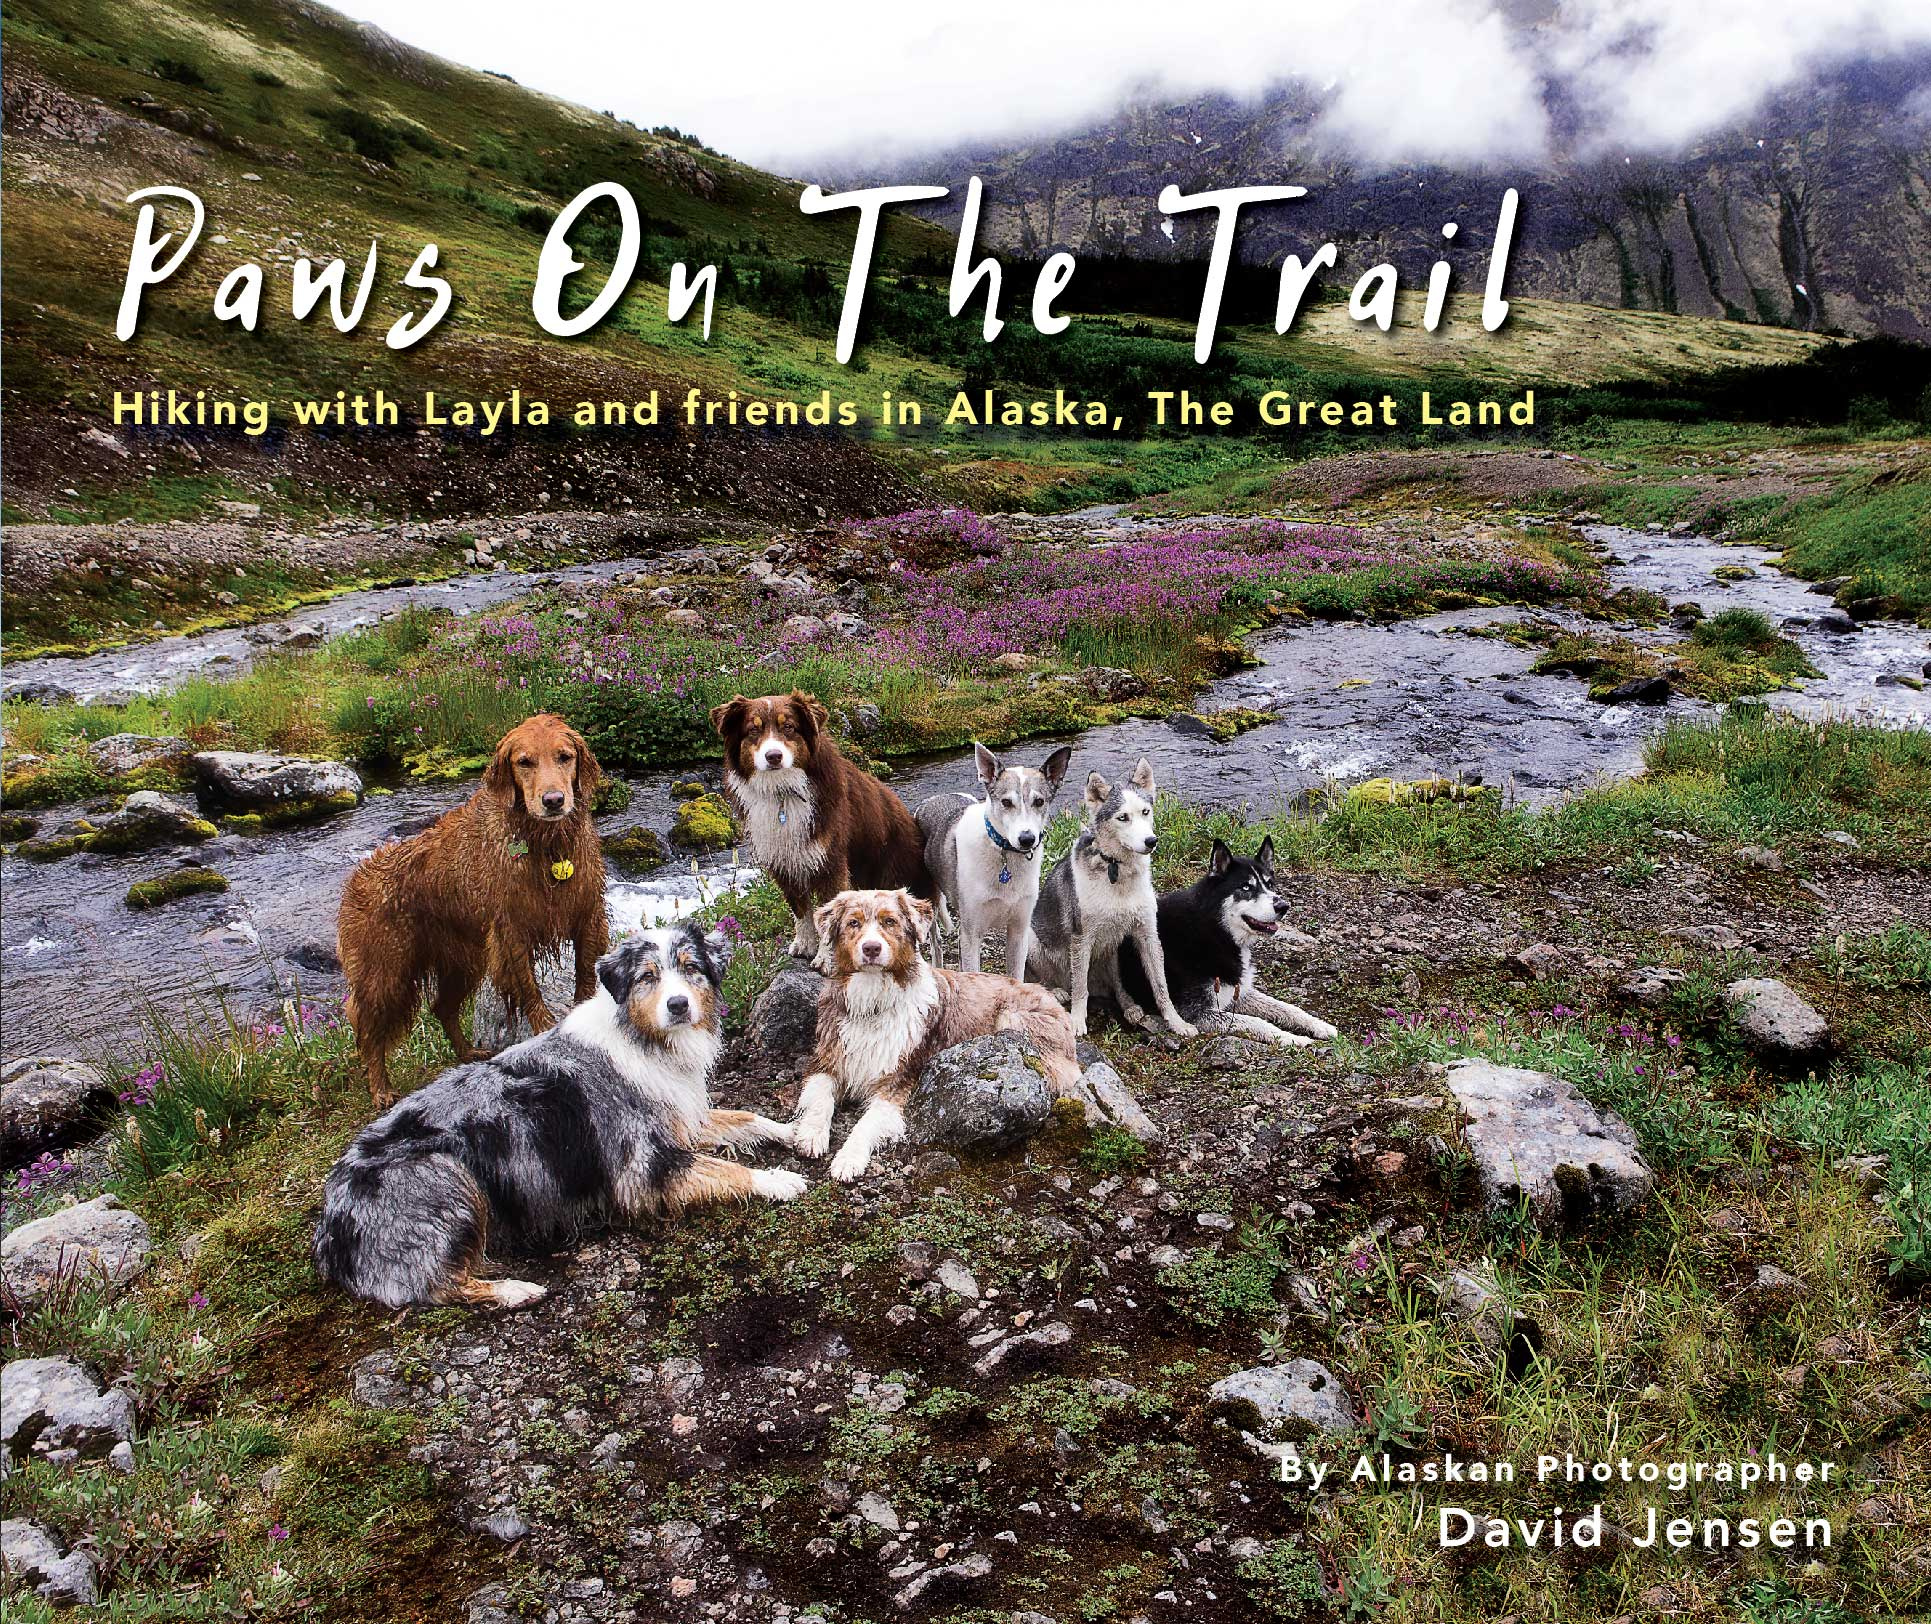 210-pages featuring nearly 400 hiking and mountaineering dogs in Alaska's beautiful Chugach Mountain Range.